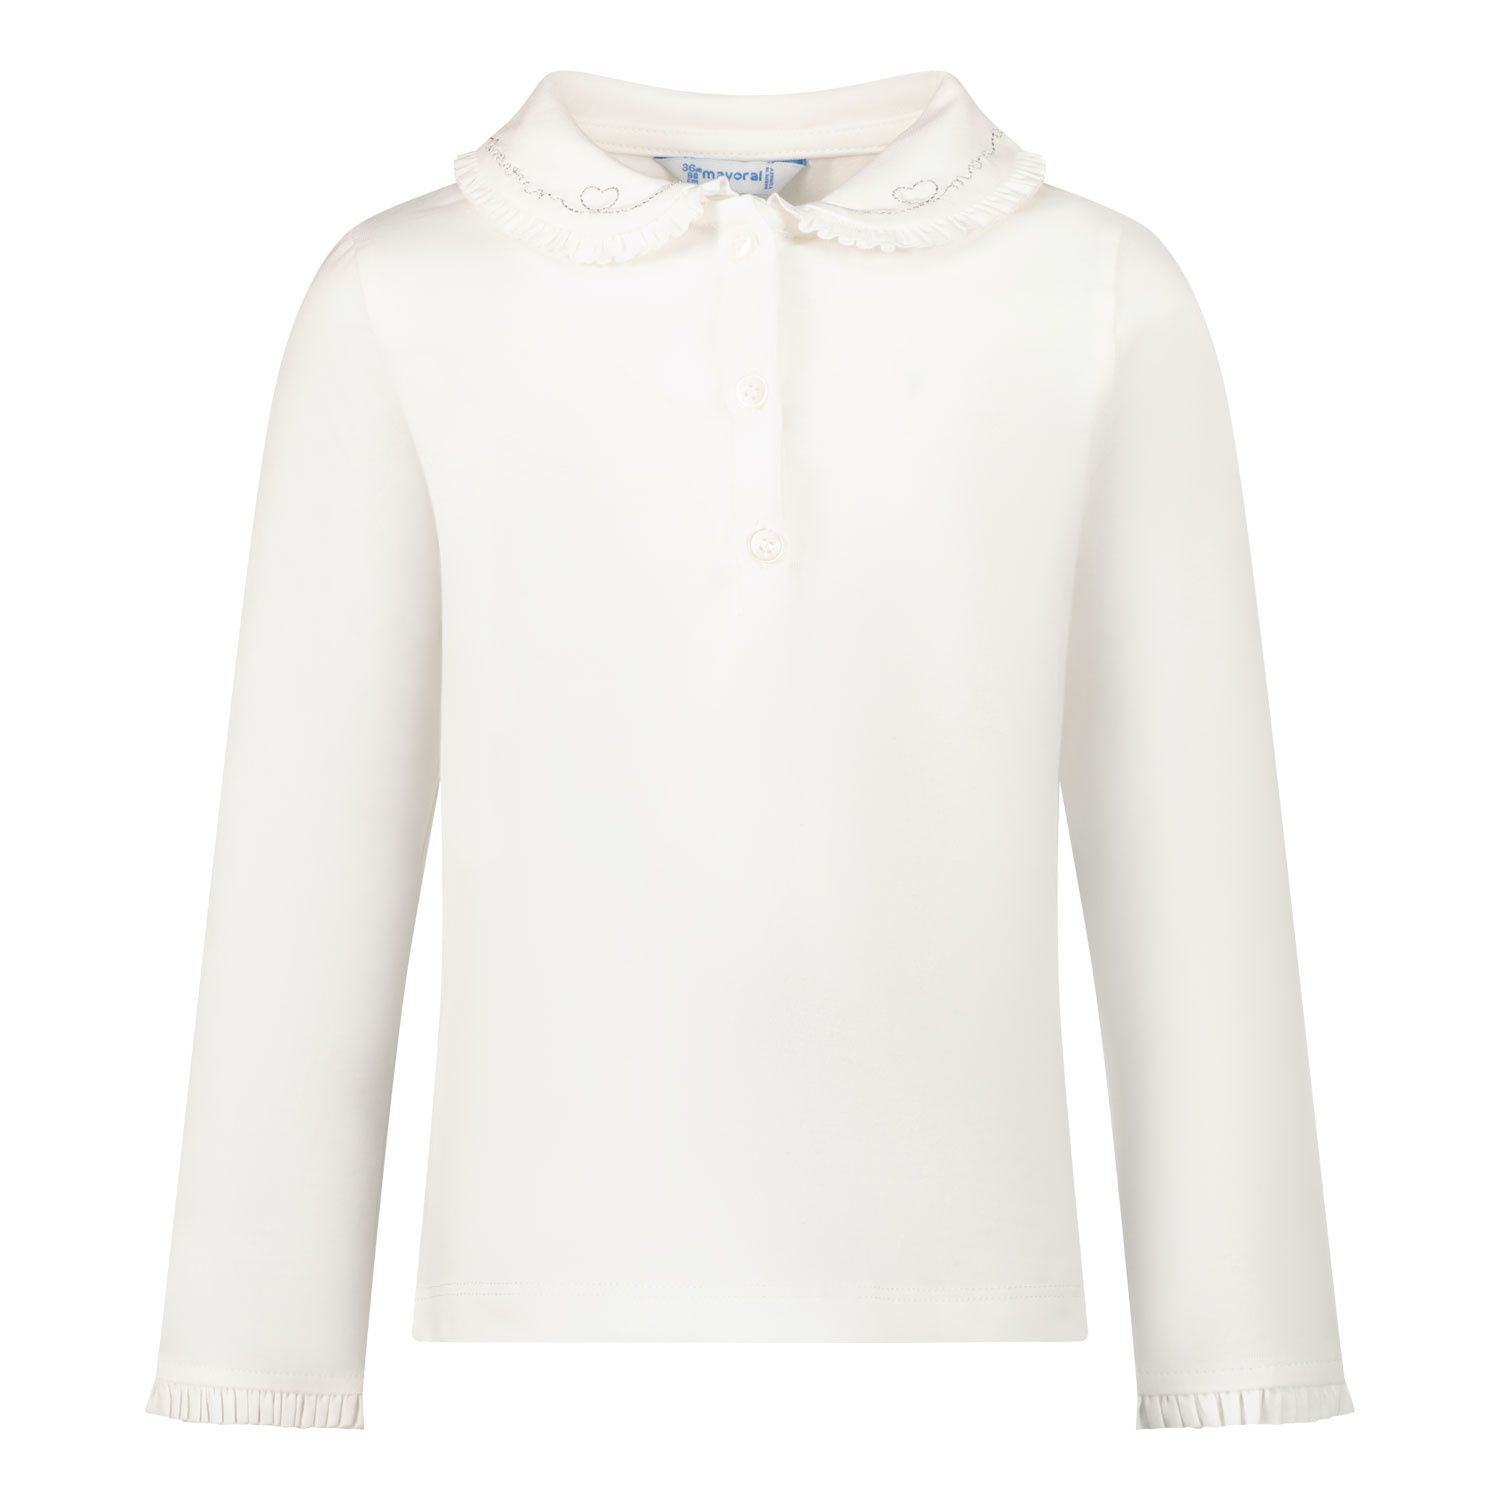 Picture of Mayoral 104 baby poloshirt off white